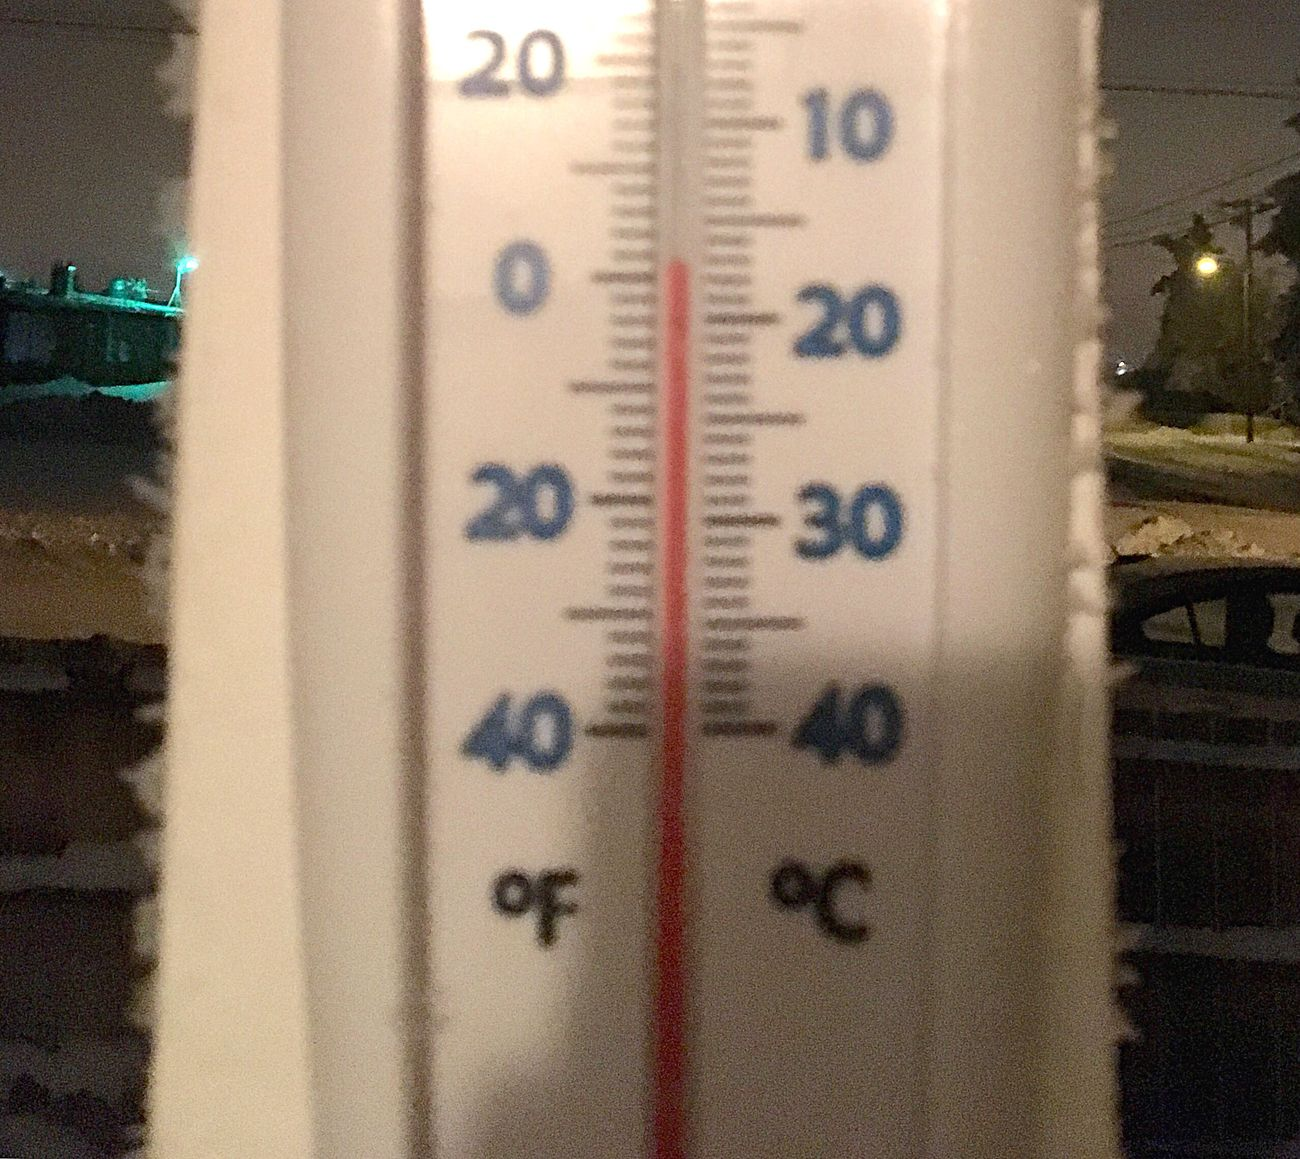 How can you sleep in this kind of temperature? It's called a 3 dog night!💃🏻-------------------- Thermometer Temperature Number Close-up No People -------------- Streamzoo EyeEm Tadda StreamzooVille Tadda Community Eye4photography  EyeEm Gallery Streamzoofamily